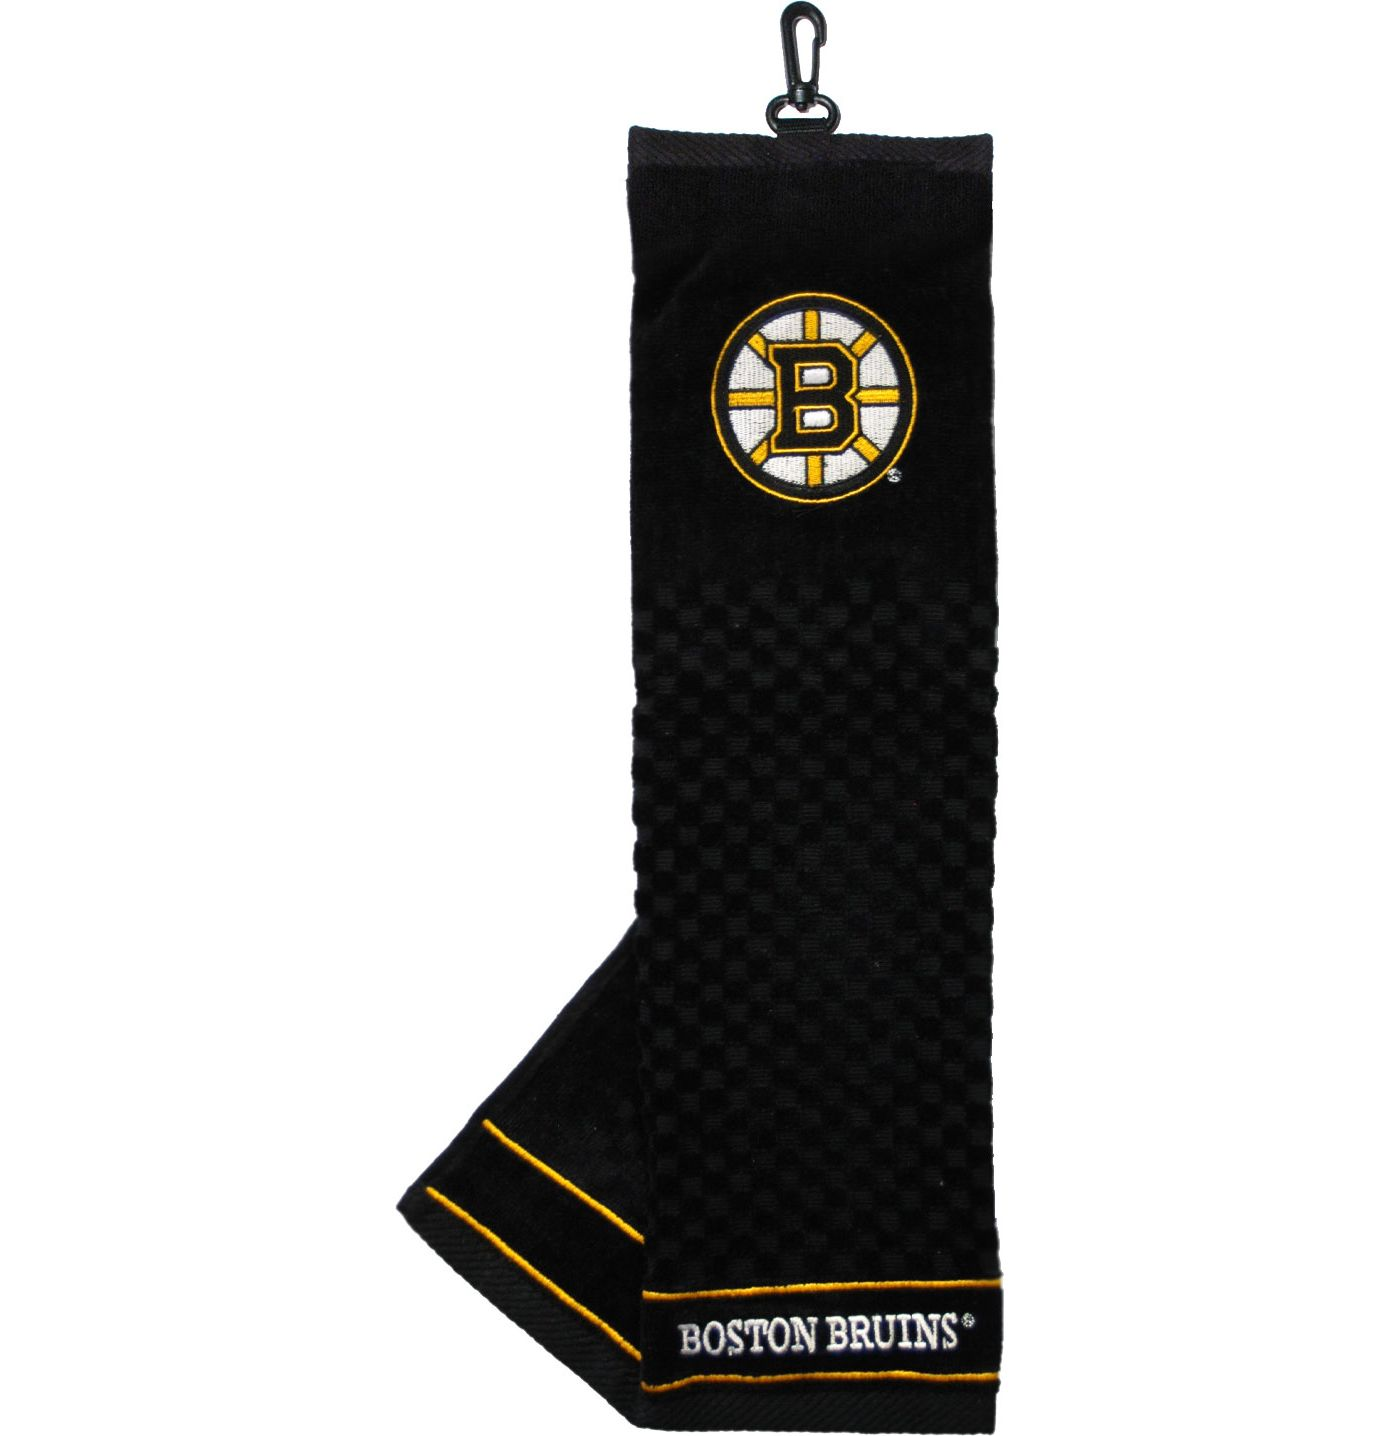 Team Golf Boston Bruins Embroidered Towel